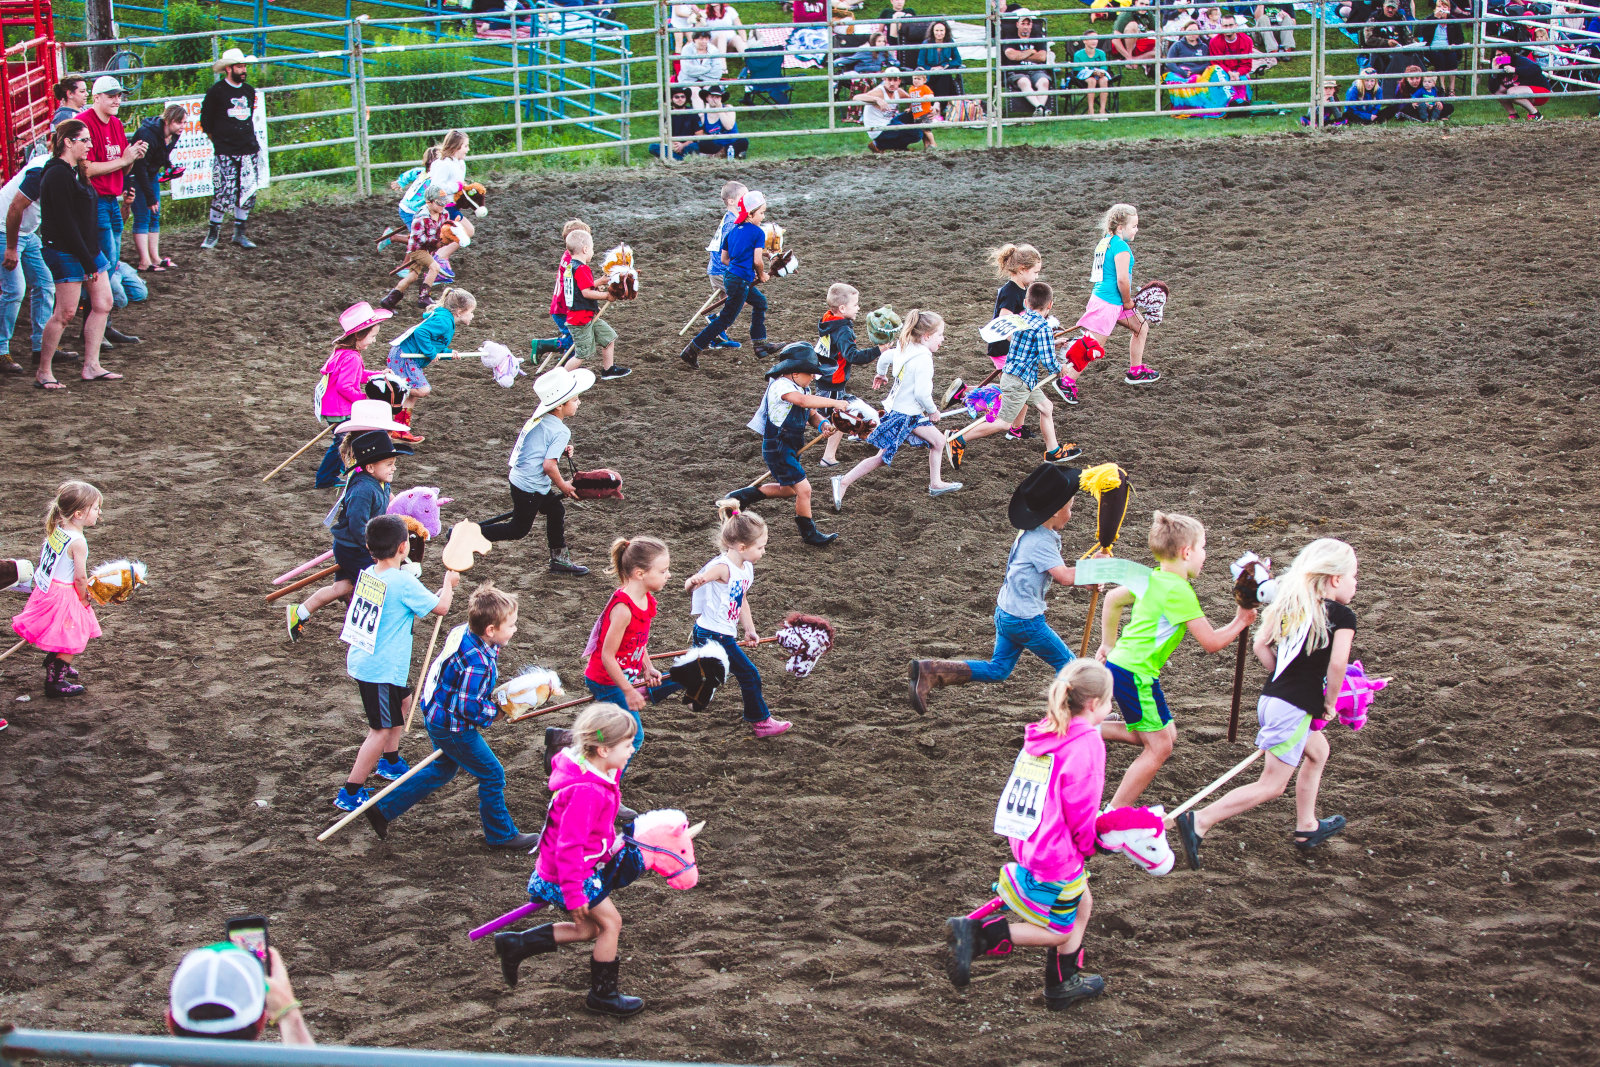 Stick-horse race at the Ellicottville Rodeo in July 2018